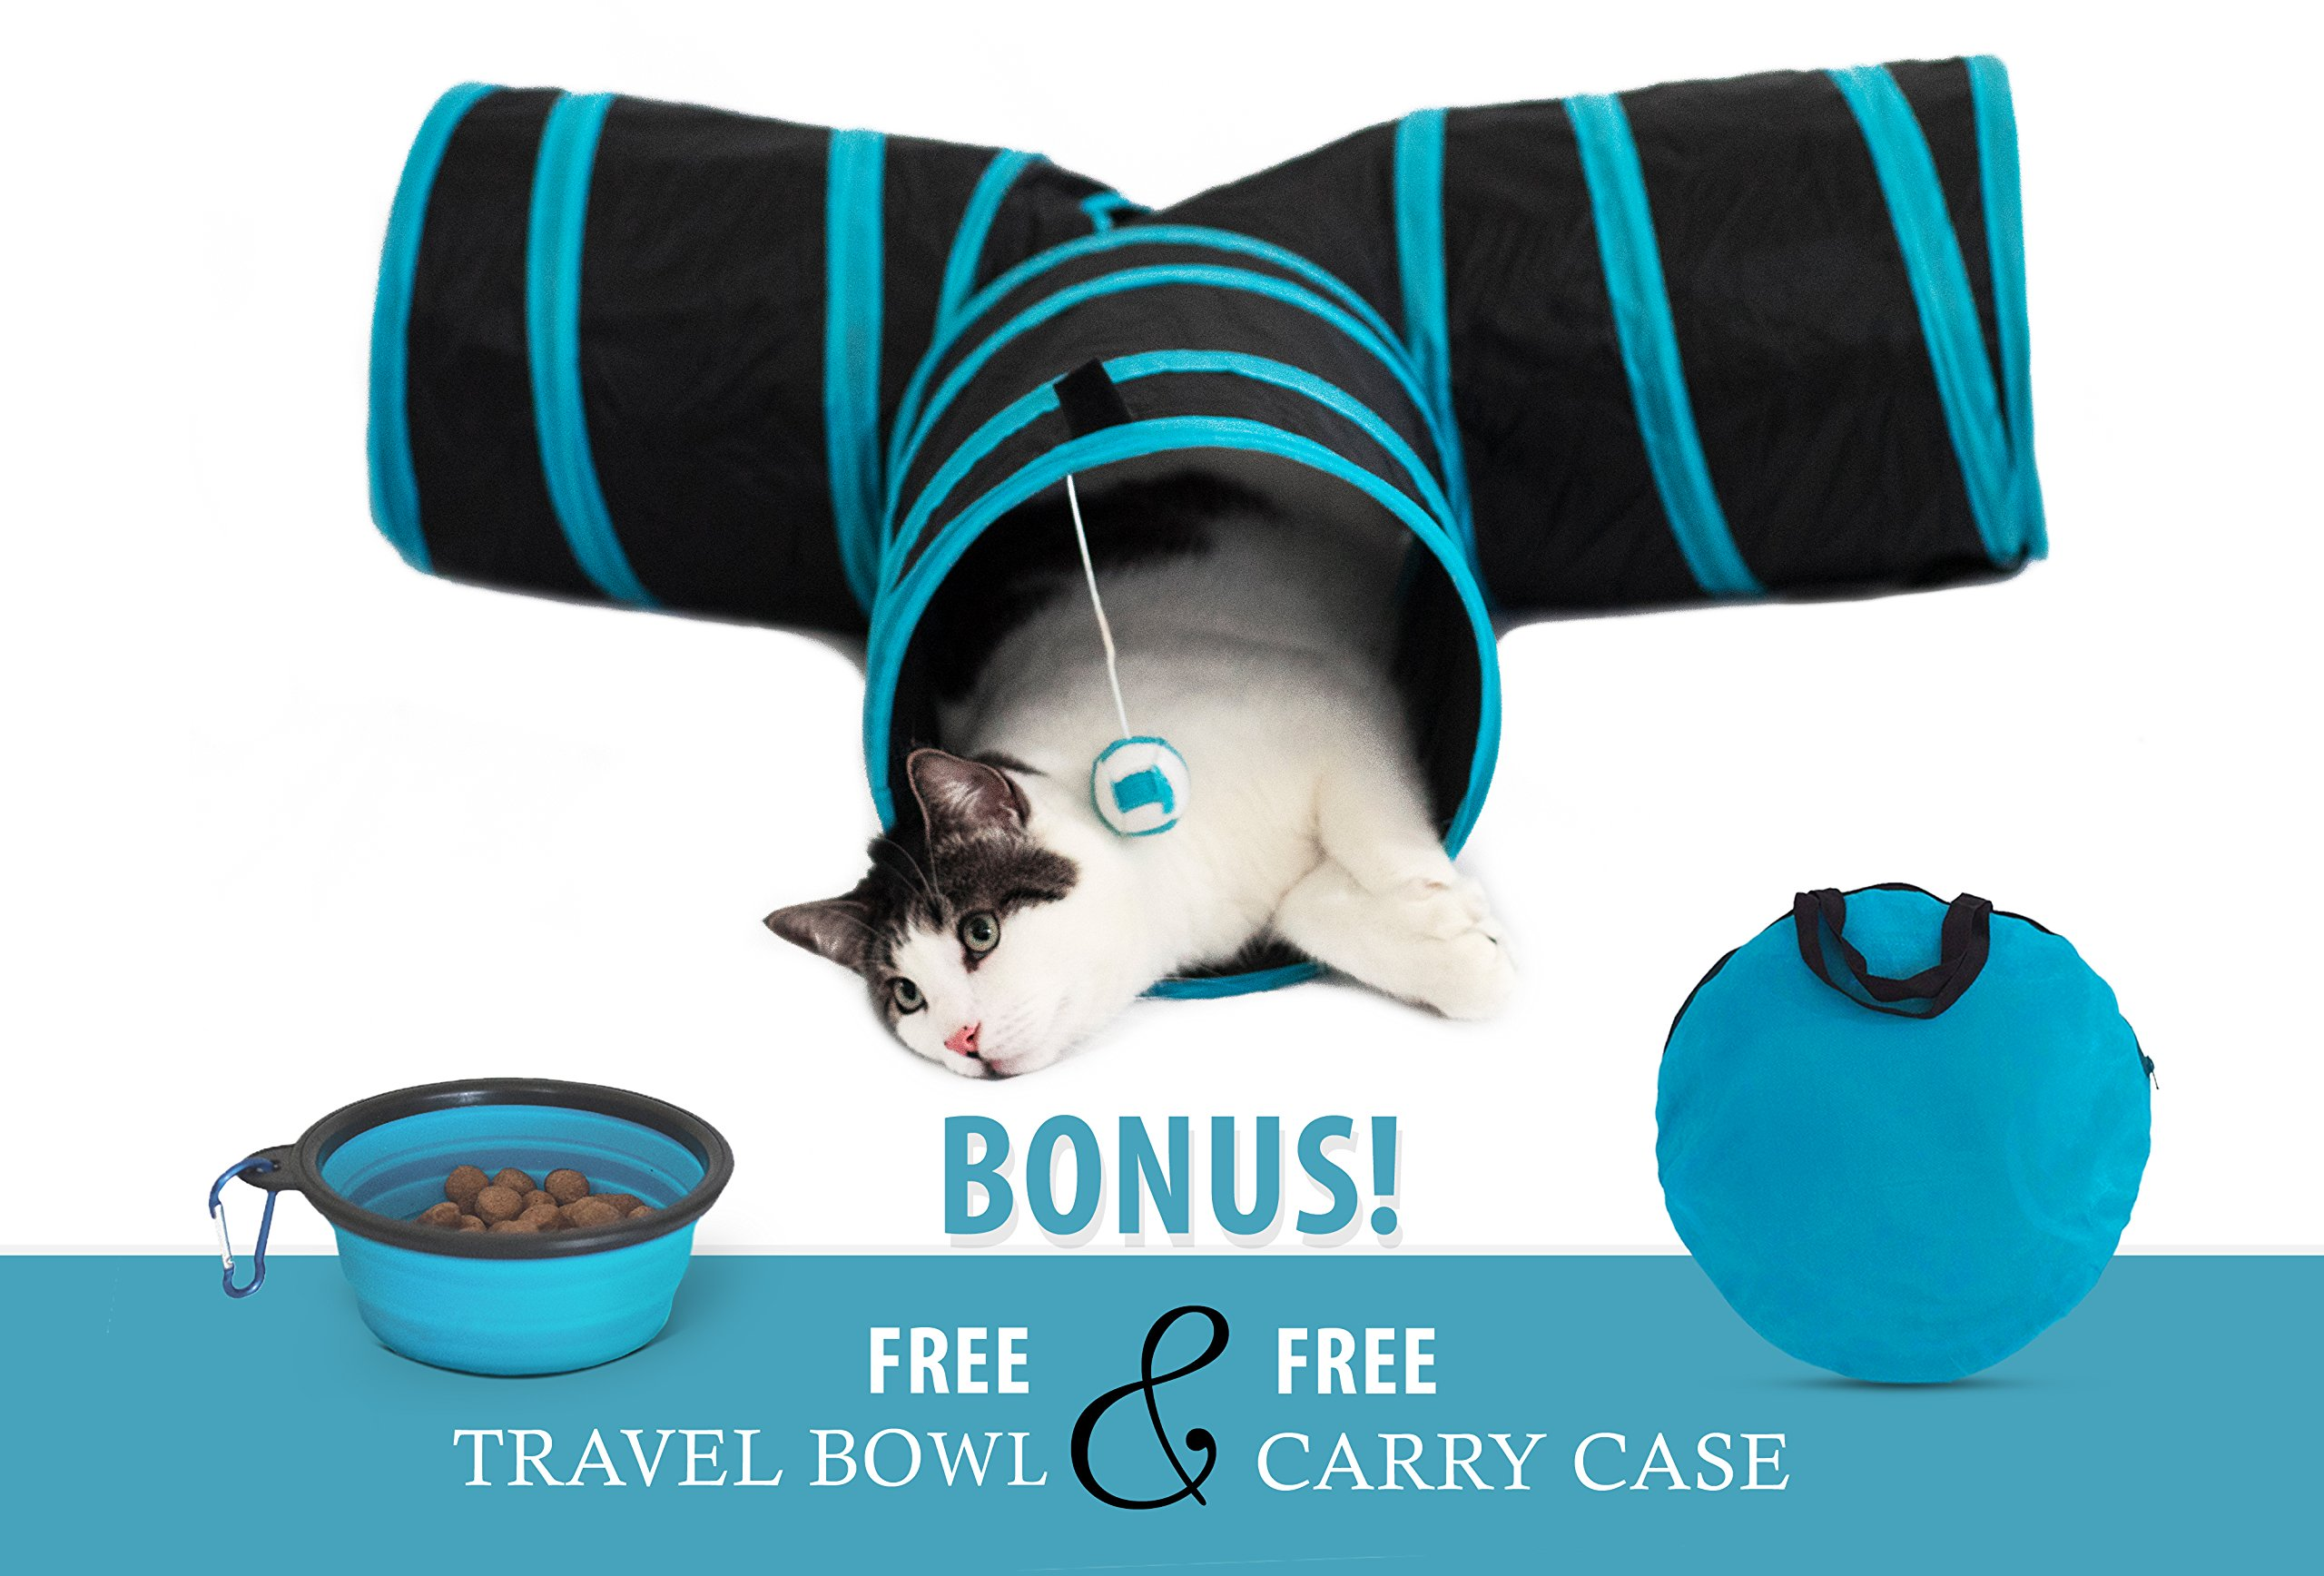 Unleashed Pets 3 Way T-Shaped Collapsible Pet Cat Tunnel Play Tube | With Carrying Case and Bonus Food Bowl | With Peek Hole, Hanging Ball Toy | For Cats, Puppies, Rabbits | Indoor and Outdoor Use